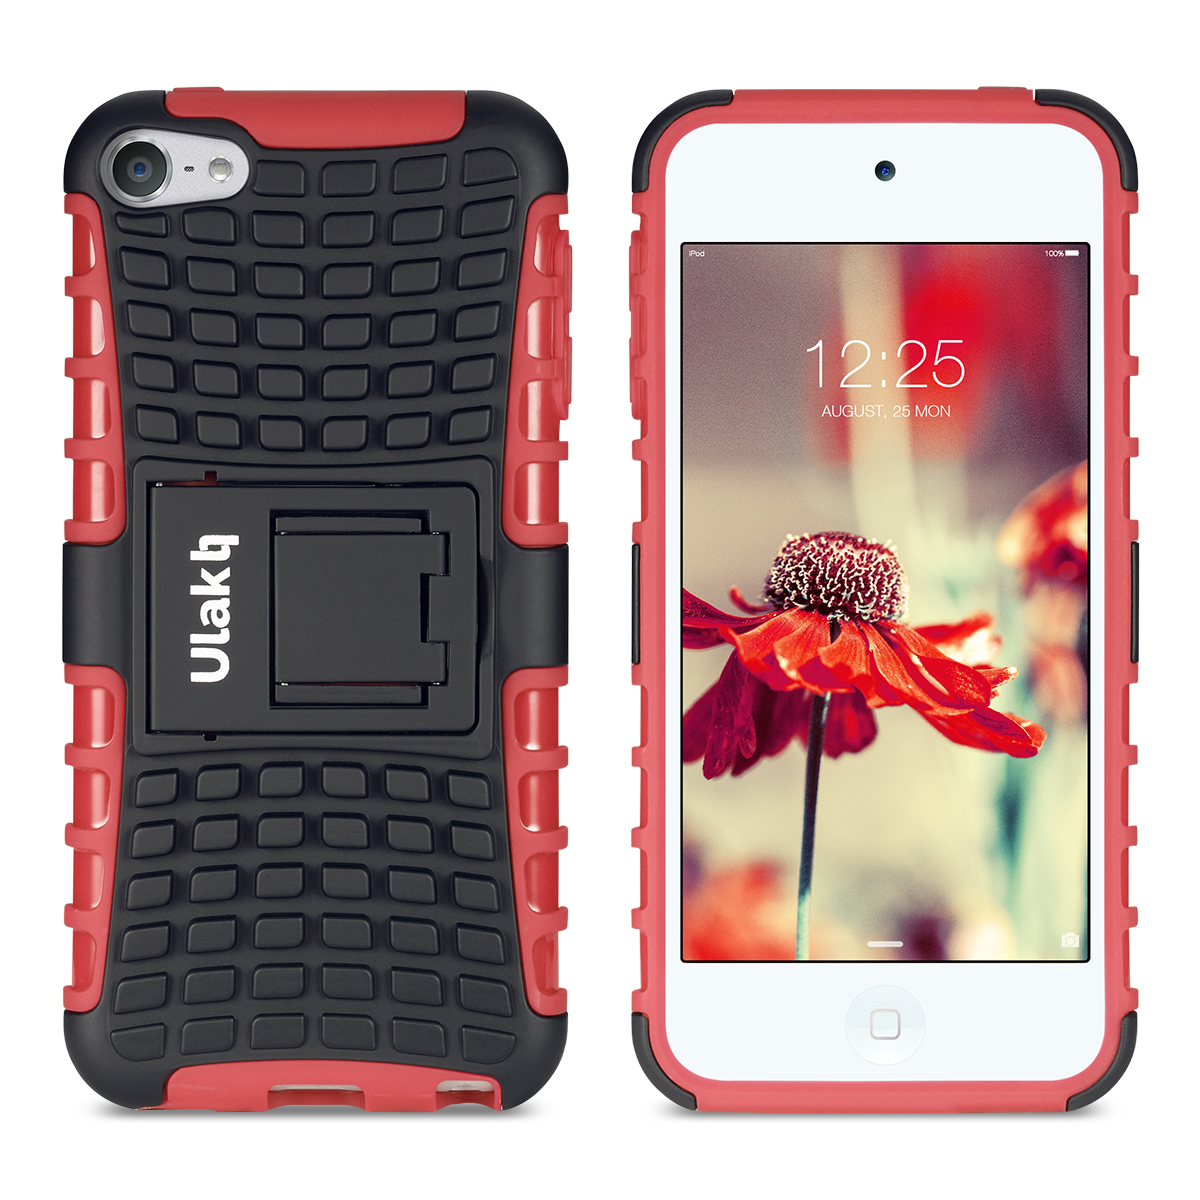 Hybrid-Hard-Protective-Silicon-TPU-Case-for-Apple-iPod-Touch-5-6th-Generation thumbnail 117